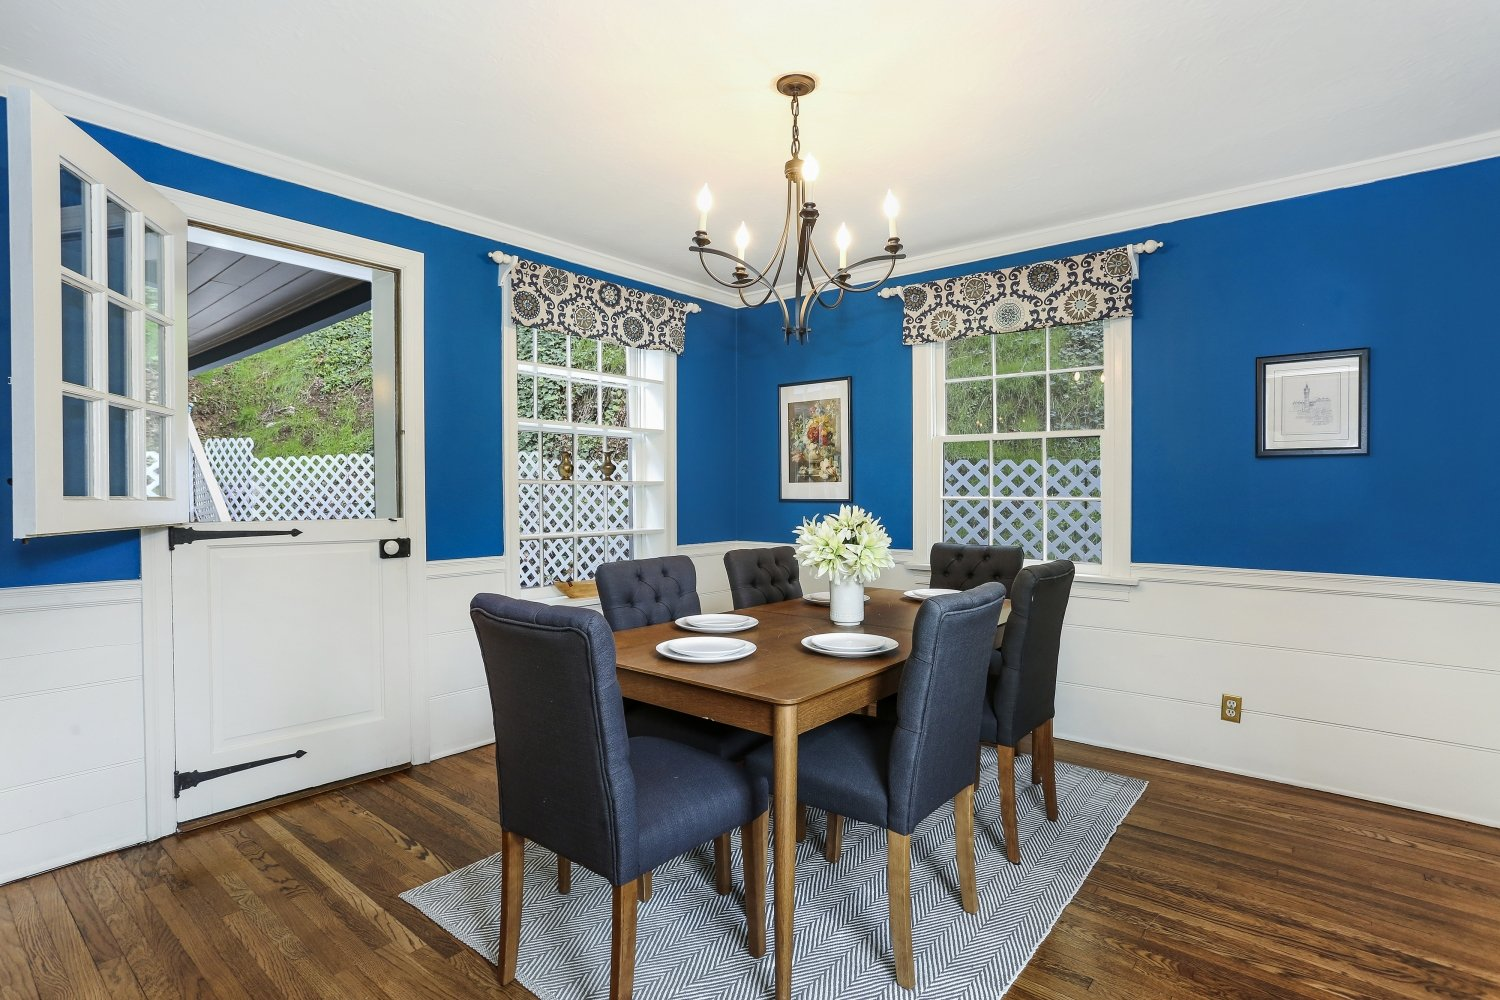 Pennsylvania Dutch Cottage Gerard Colford for sale in Glendale CA - Dining Room with Dutch Door